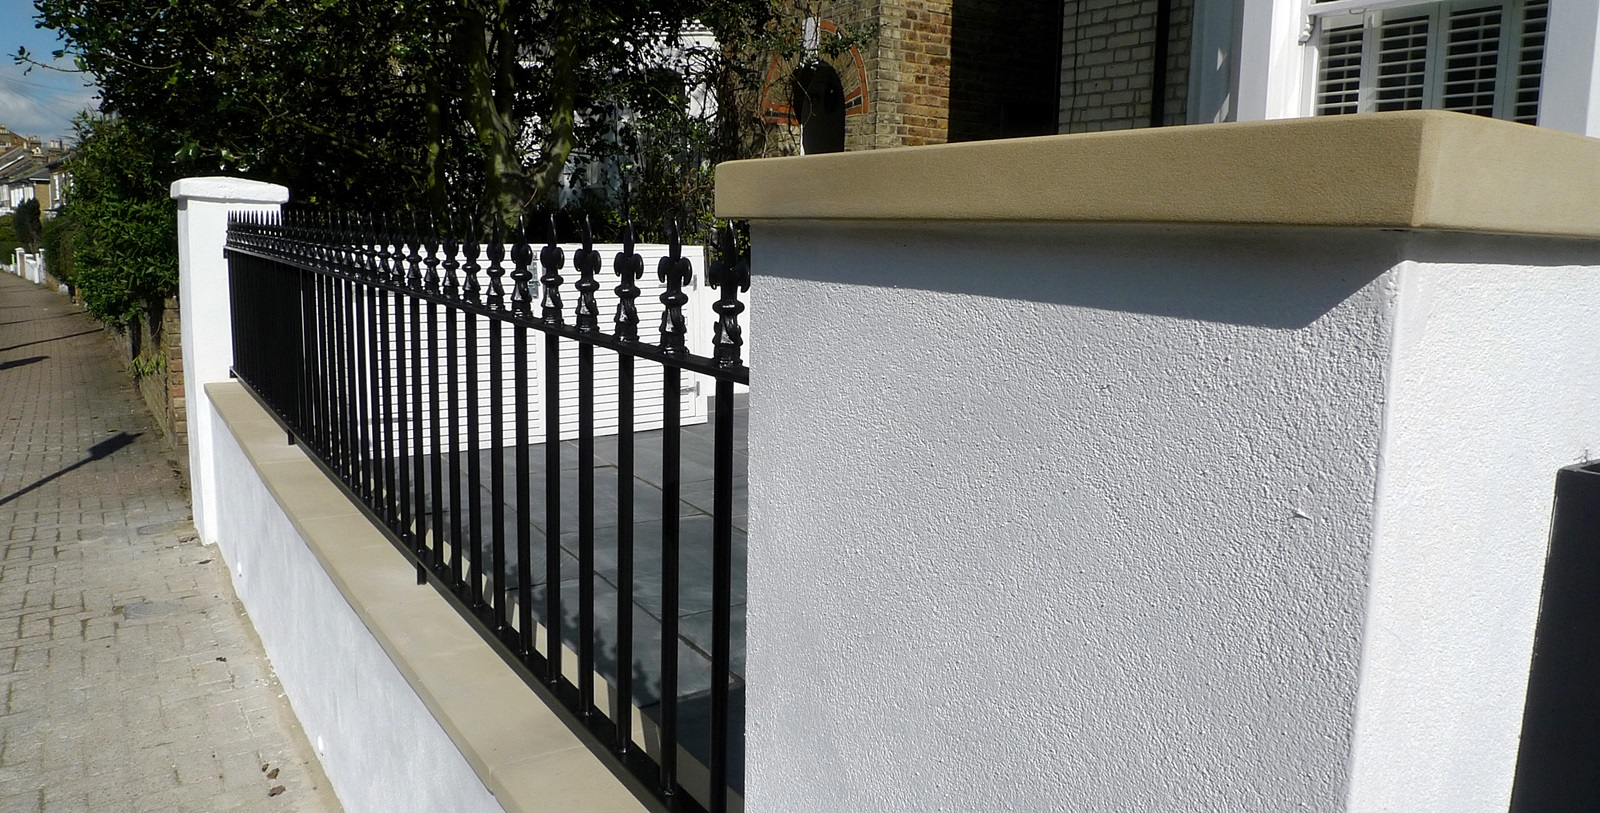 Front garden wall rail gate Victorian mosaic slate paving bespoke bin store York stone caps Balham Clapham Dulwich Tooting London (3)